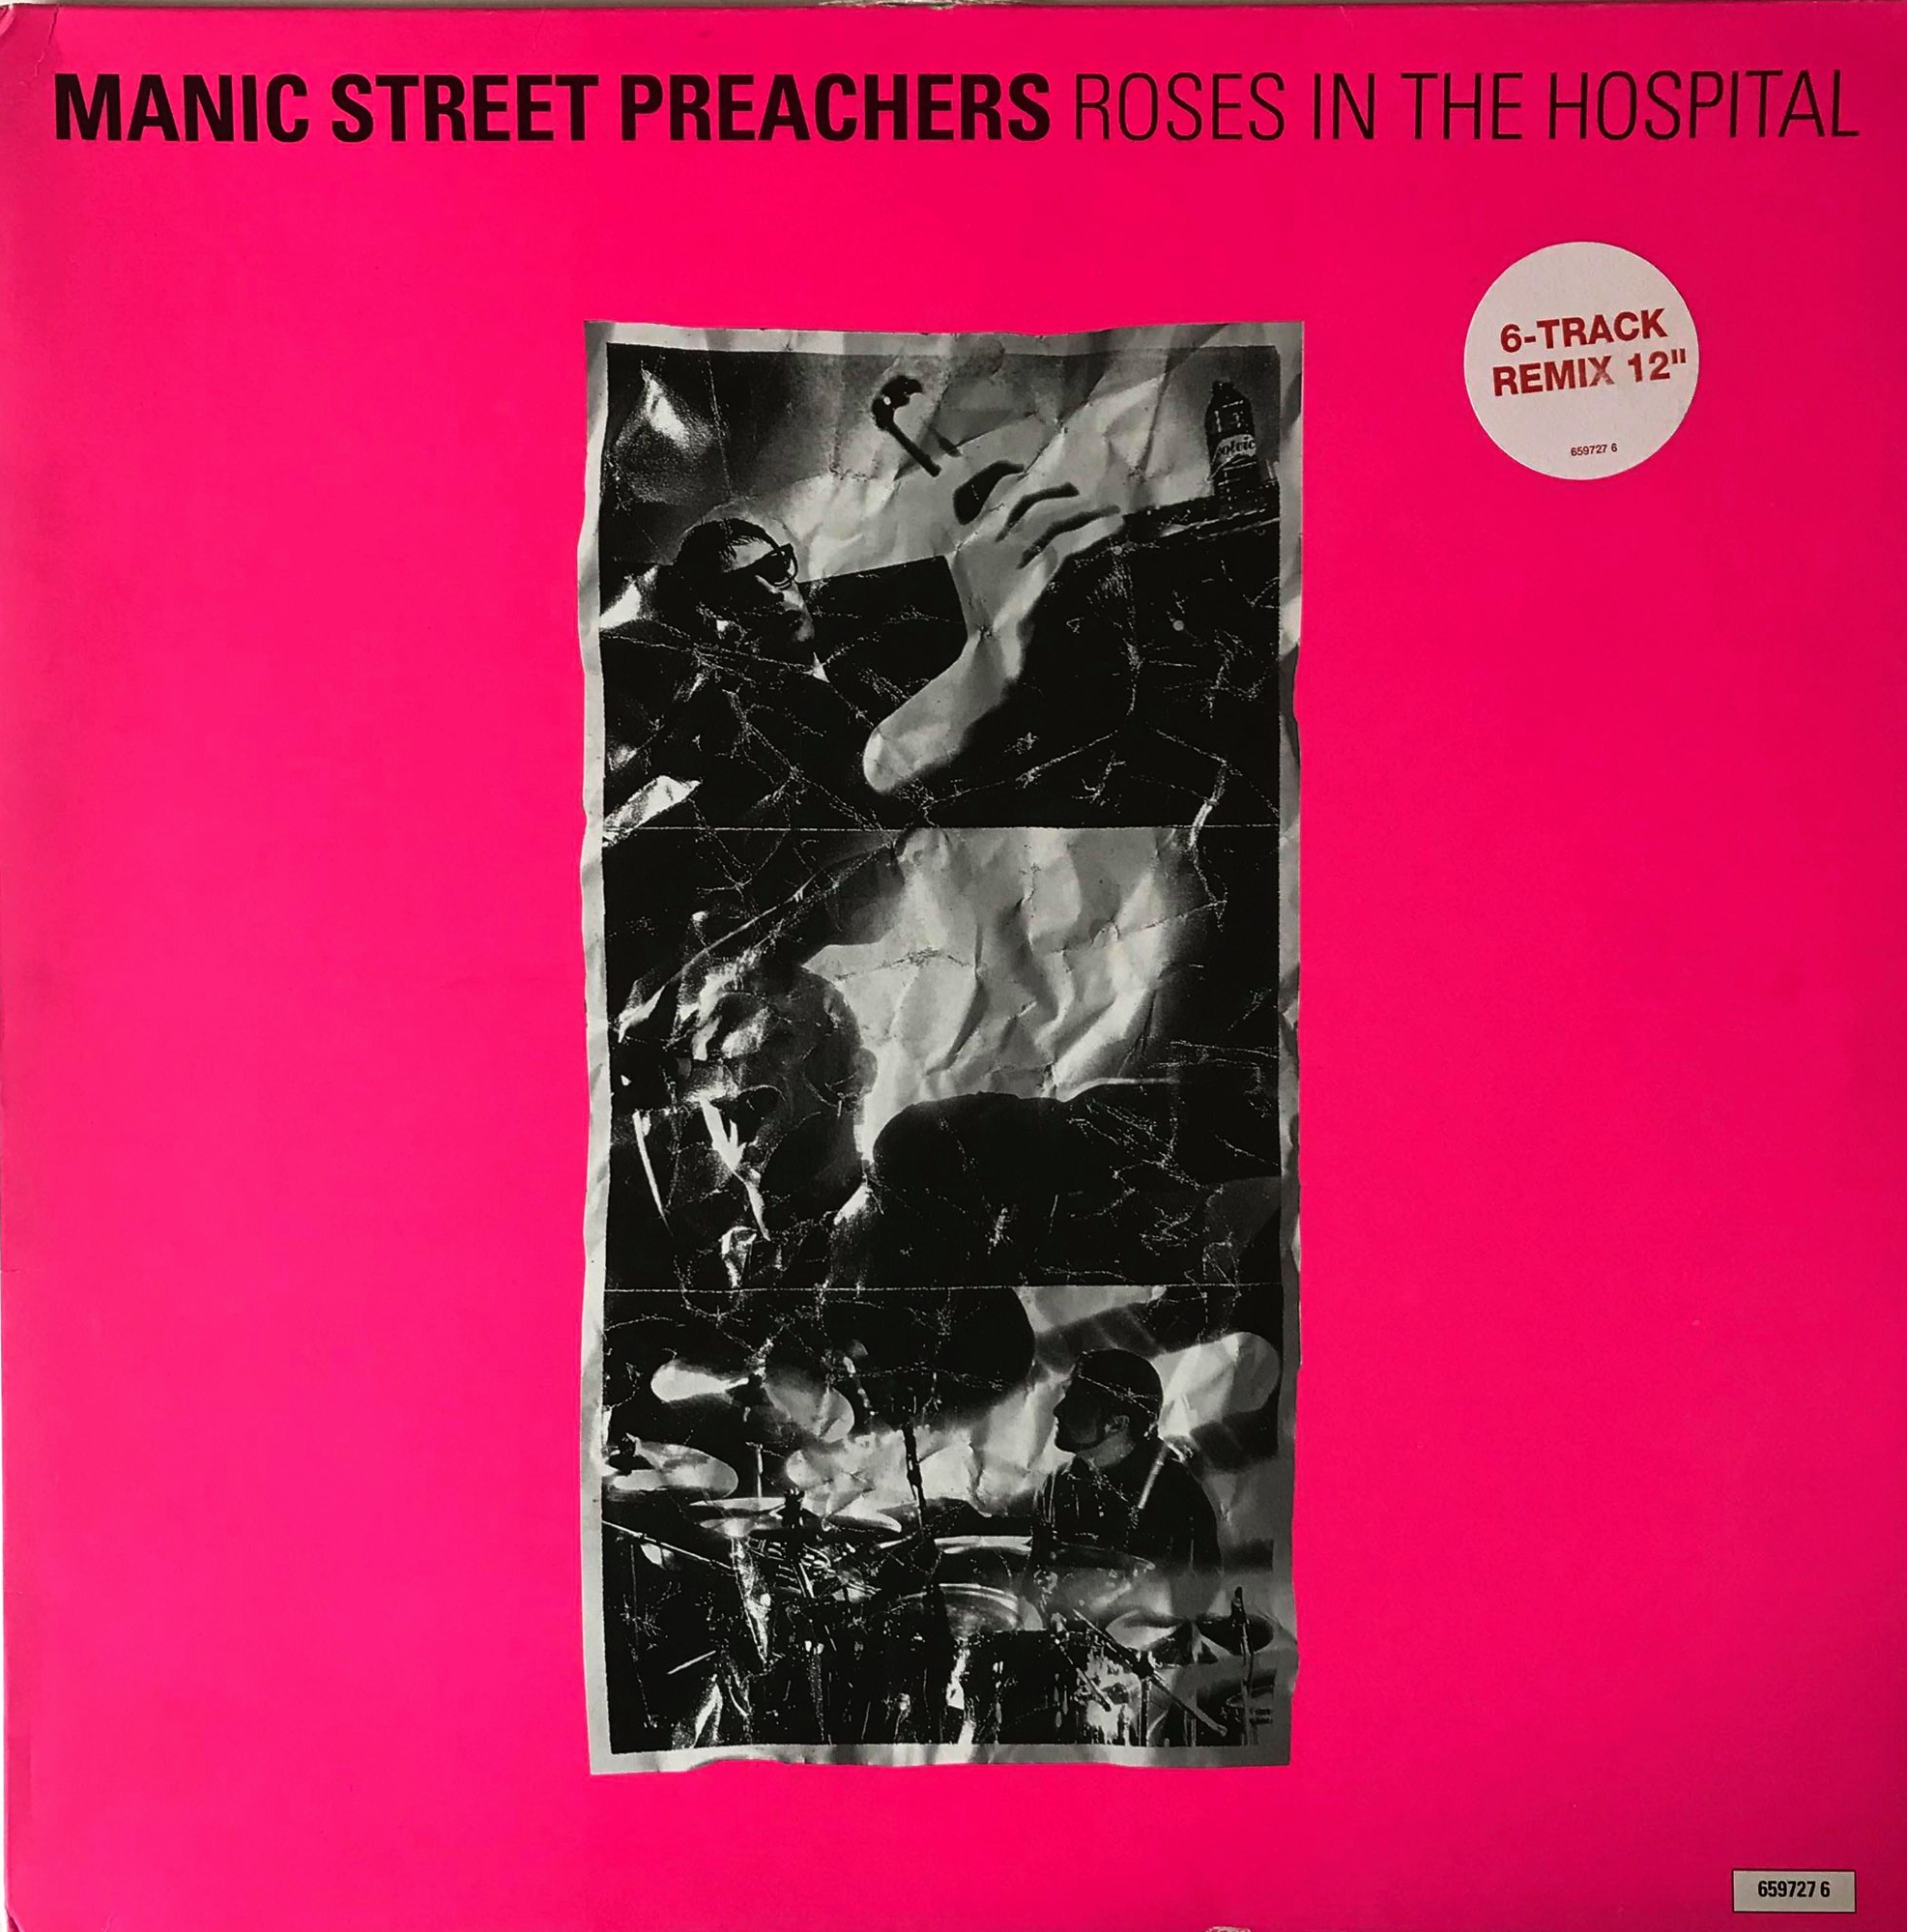 Manic Street Preachers – Roses In The Hospital (Ashley Beedle Dub)